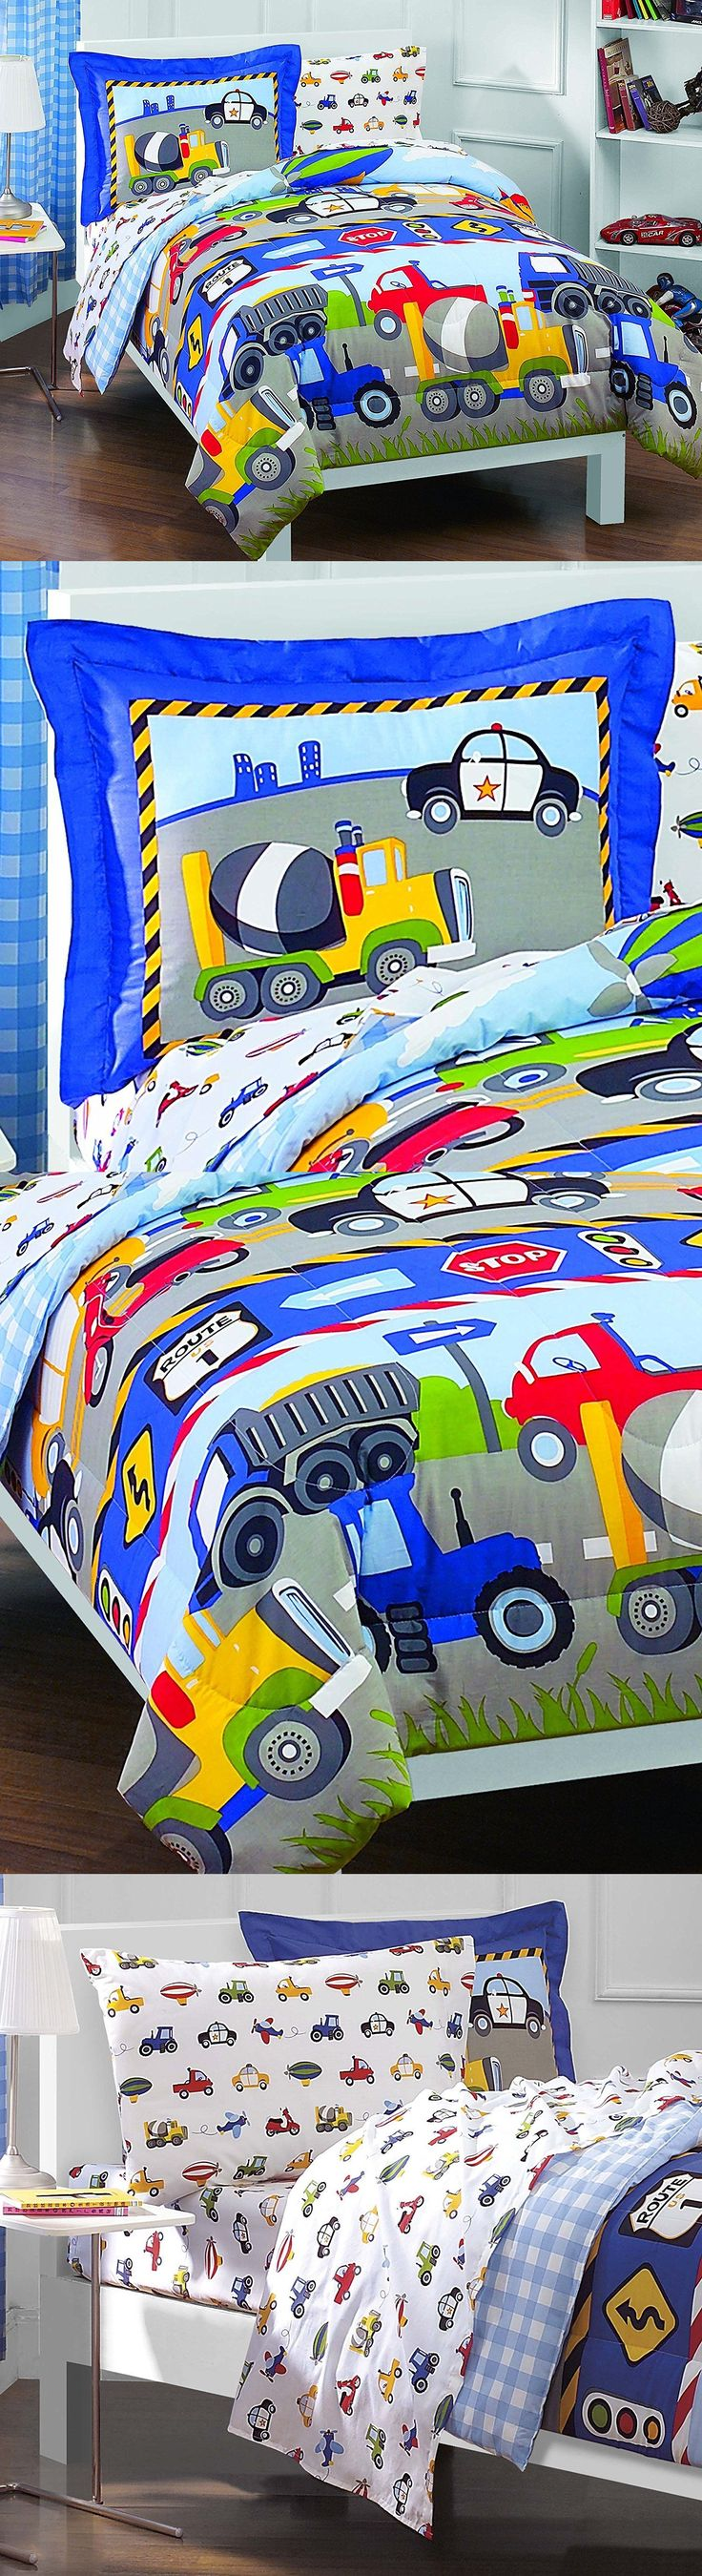 Comforters and Sets 66728: 5-Piece Comforter Sheet Set Trucks Tractors Cars For Boys Twin Size Kids Bedding -> BUY IT NOW ONLY: $48.99 on eBay!